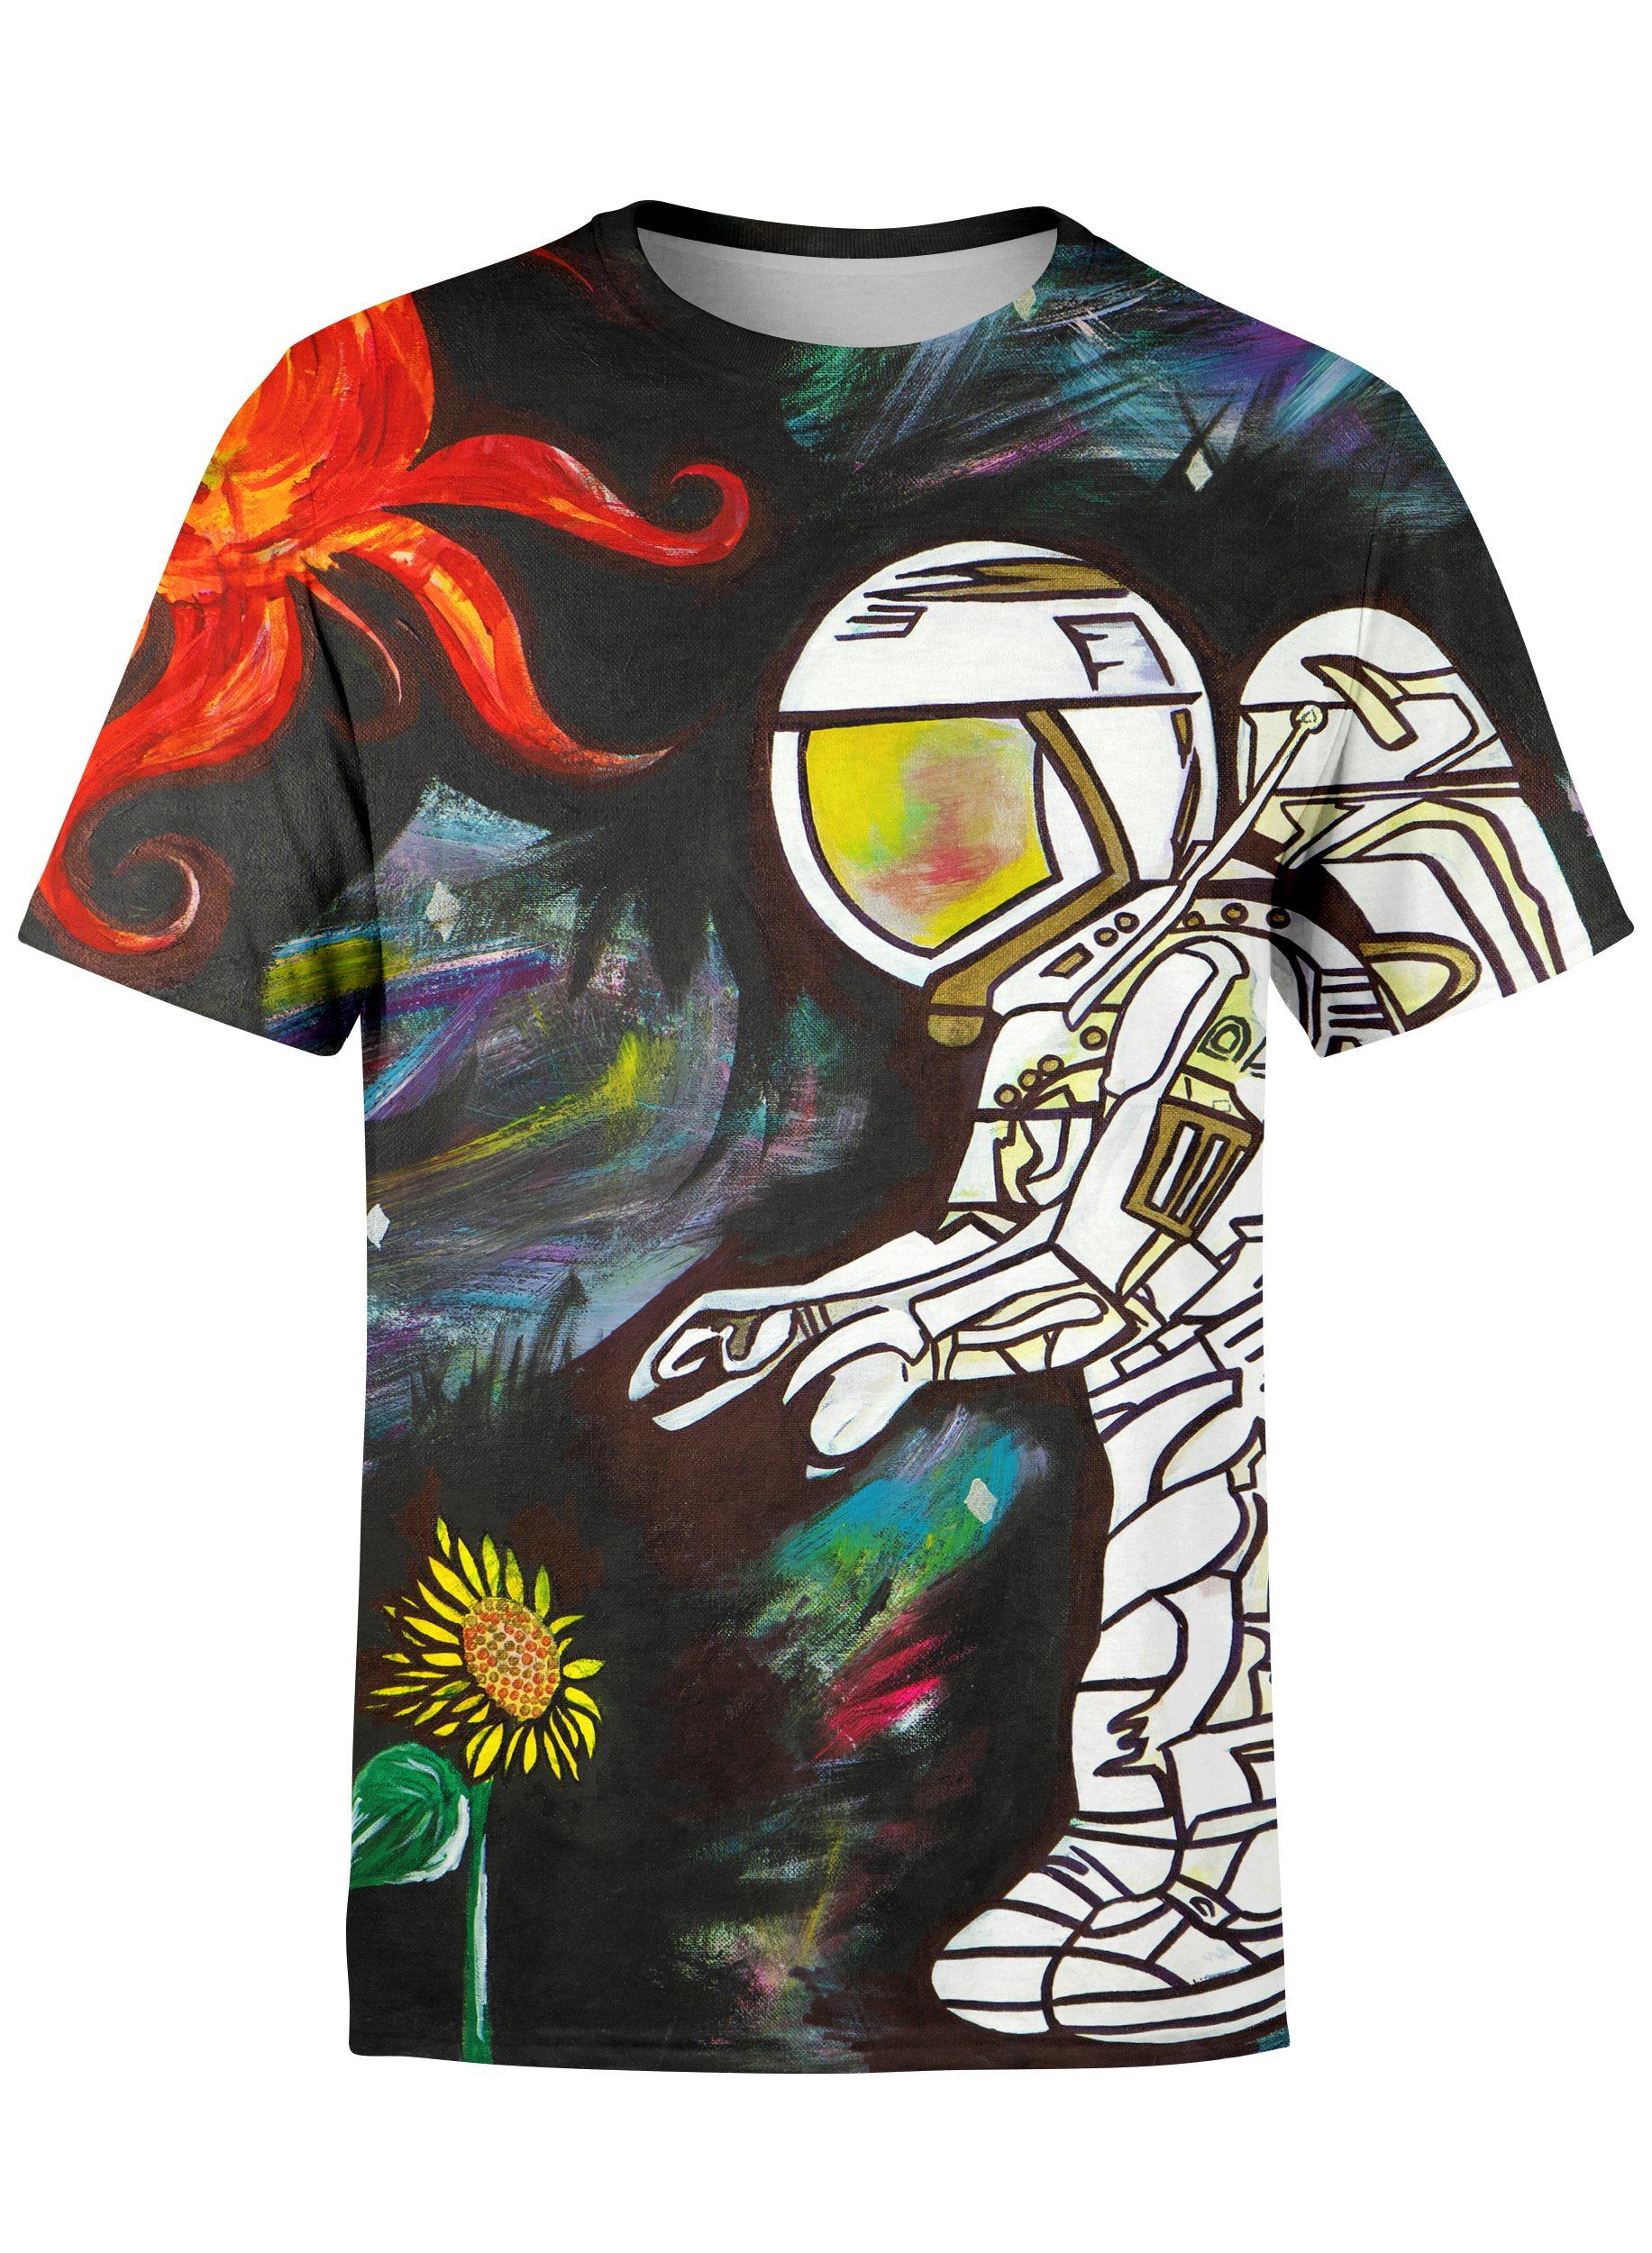 Space Cadet Unisex Crew T-Shirts T6